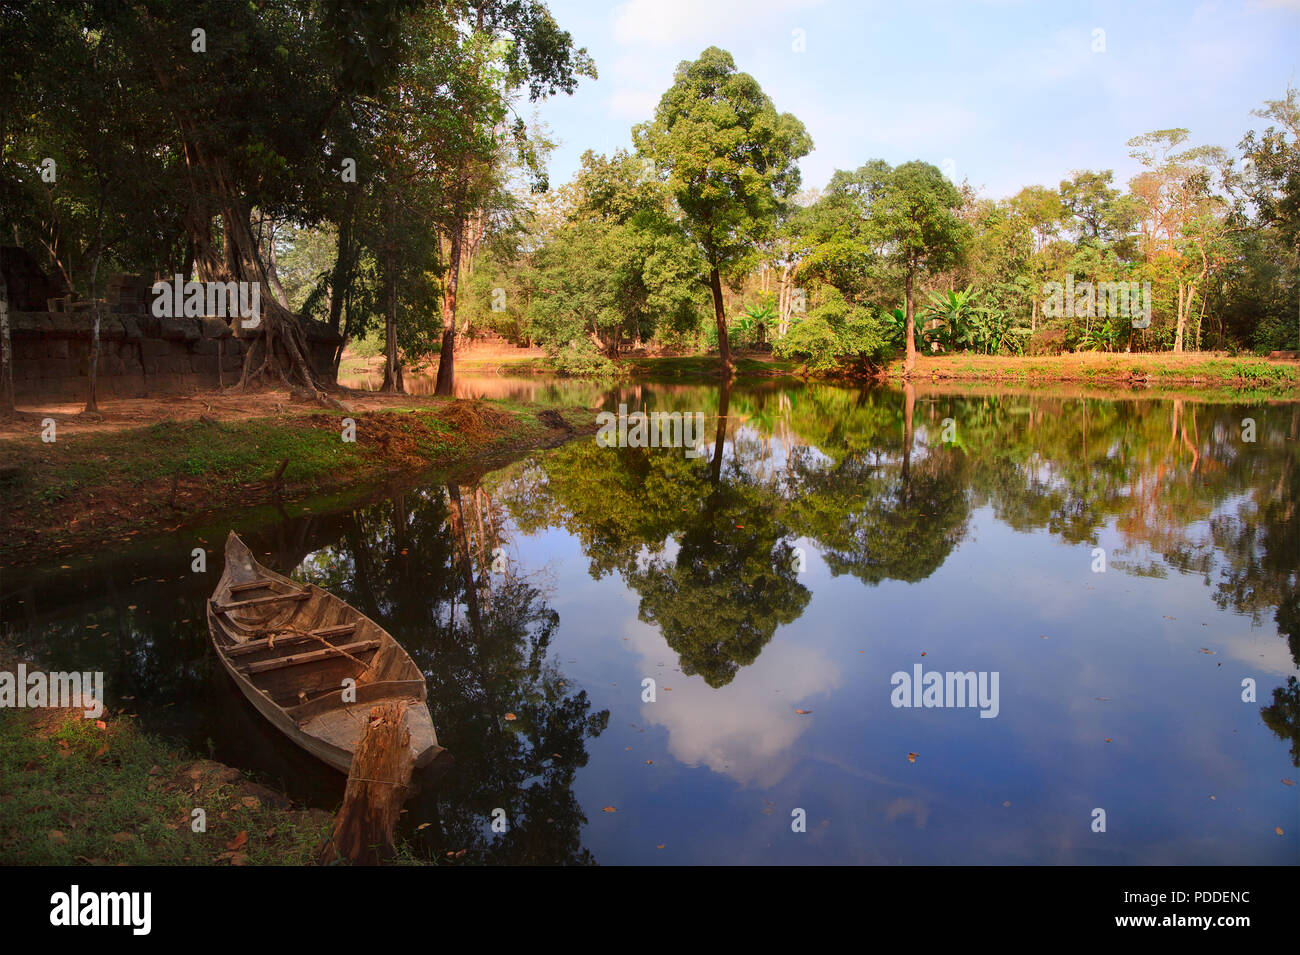 Jungle at the walls of the ancient Khmer temple in Koh Kher national Park, Cambodia - Stock Image